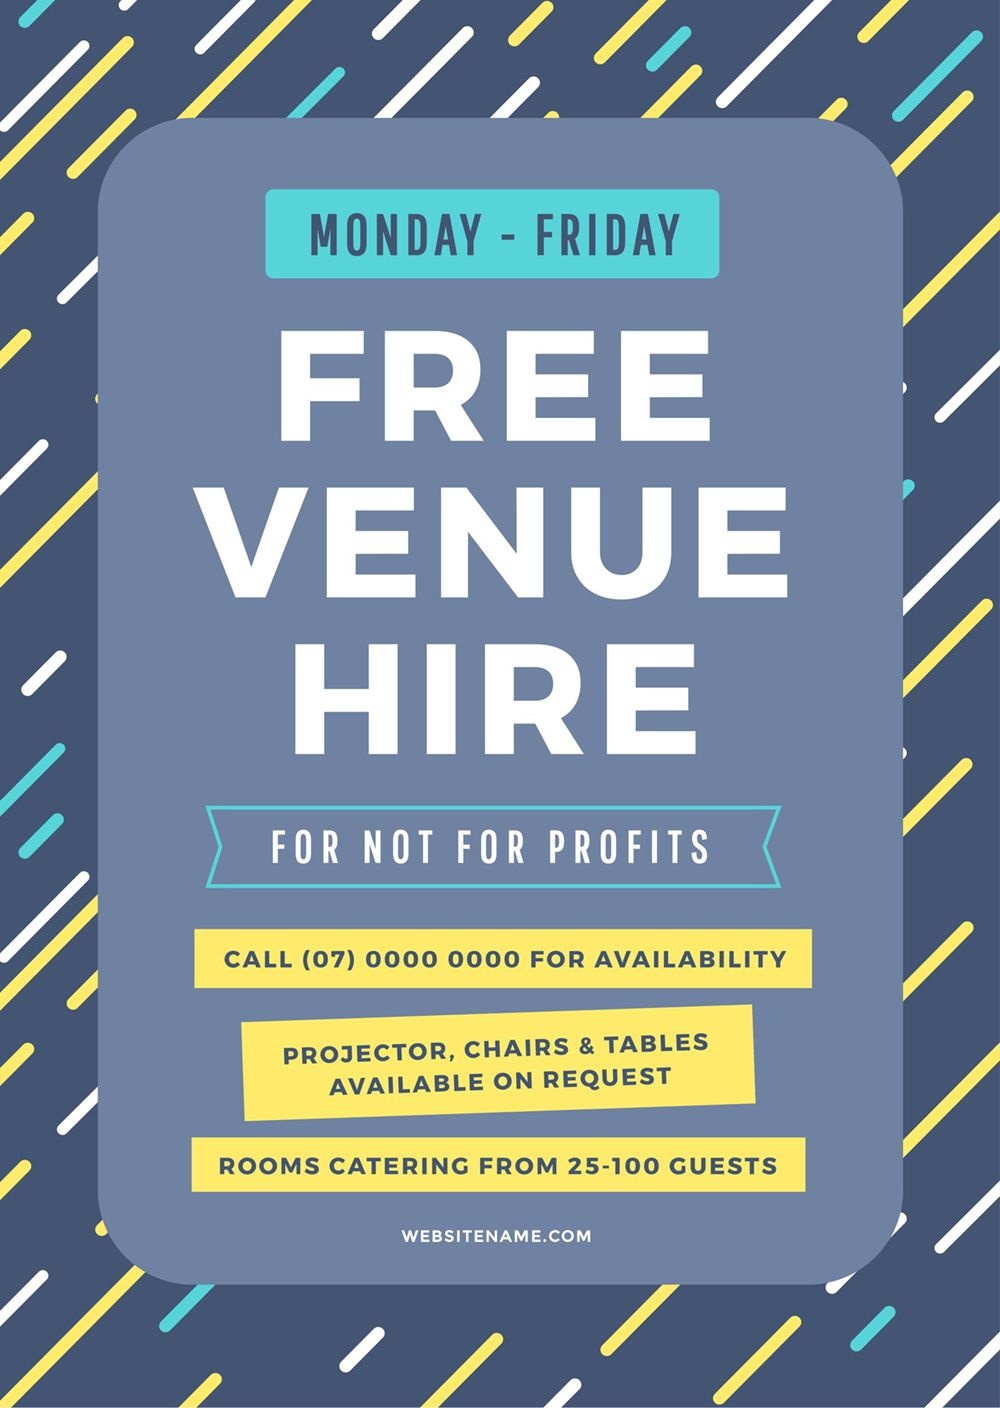 How To Get More Event Bookings At Your Venue 21 Easy Tips Easil Event Planning Poster Event Marketing Plan Event Planning Quotes